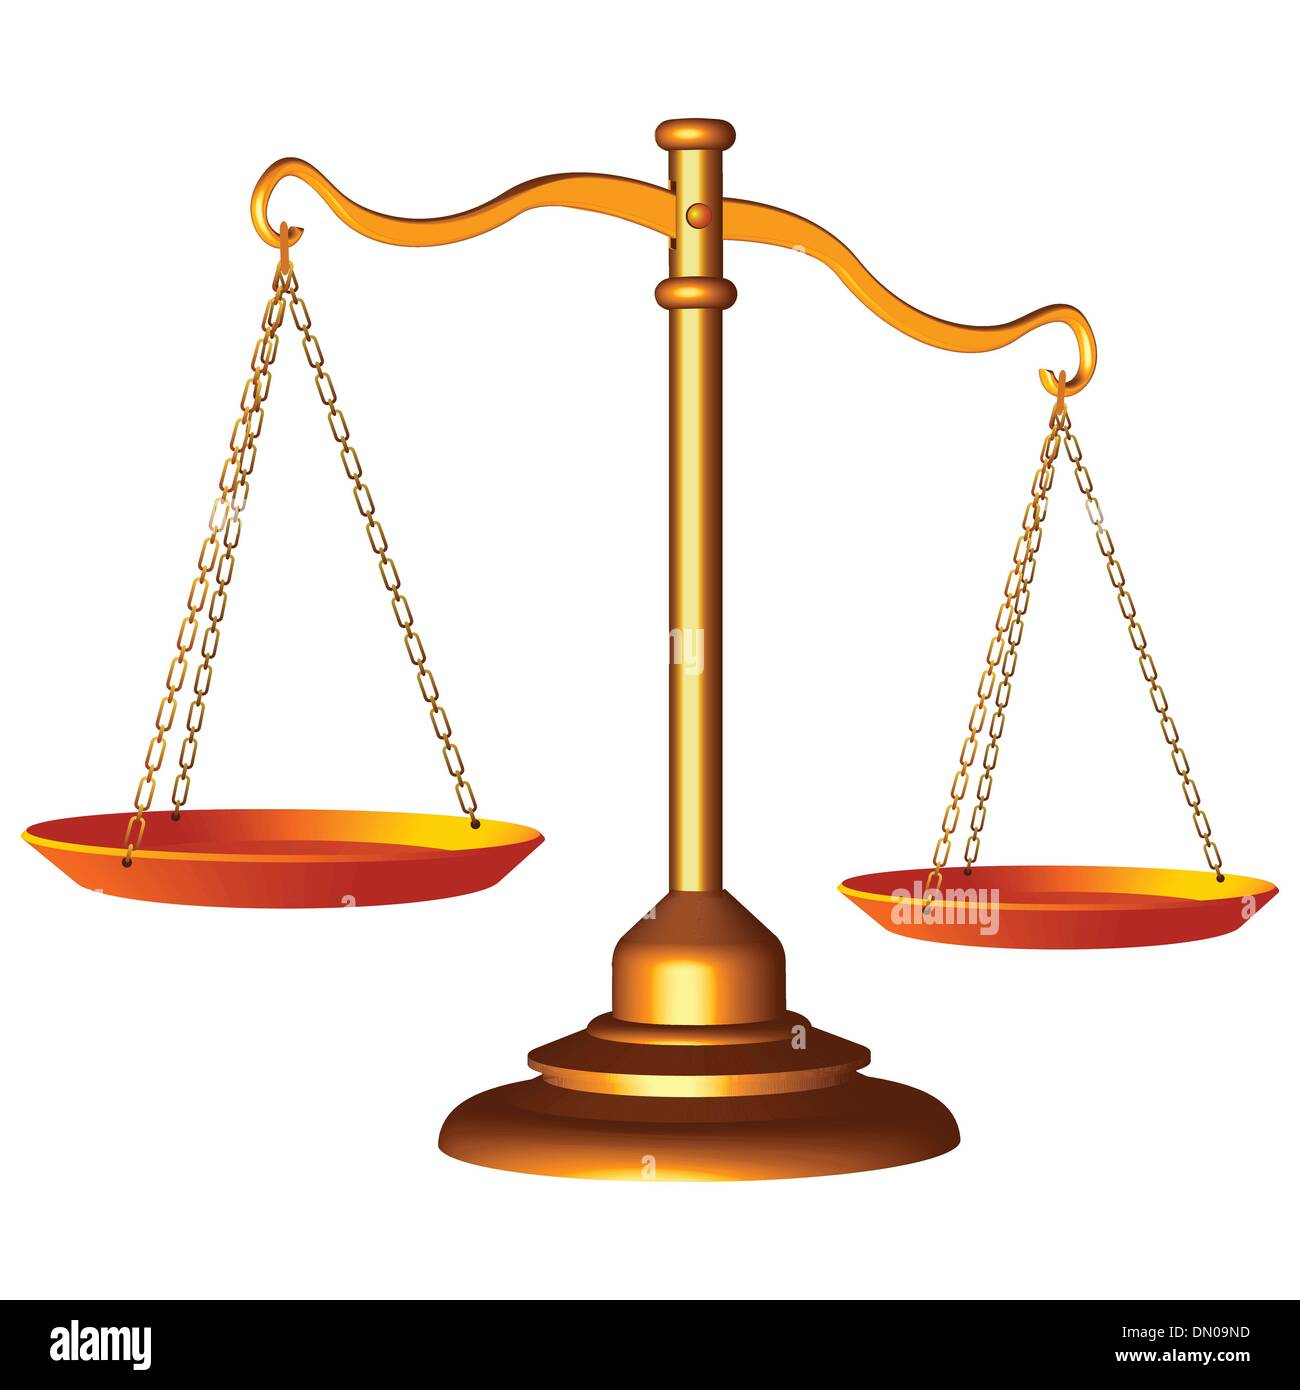 Golden Scale Of Justice Stock Vector Art Illustration Vector